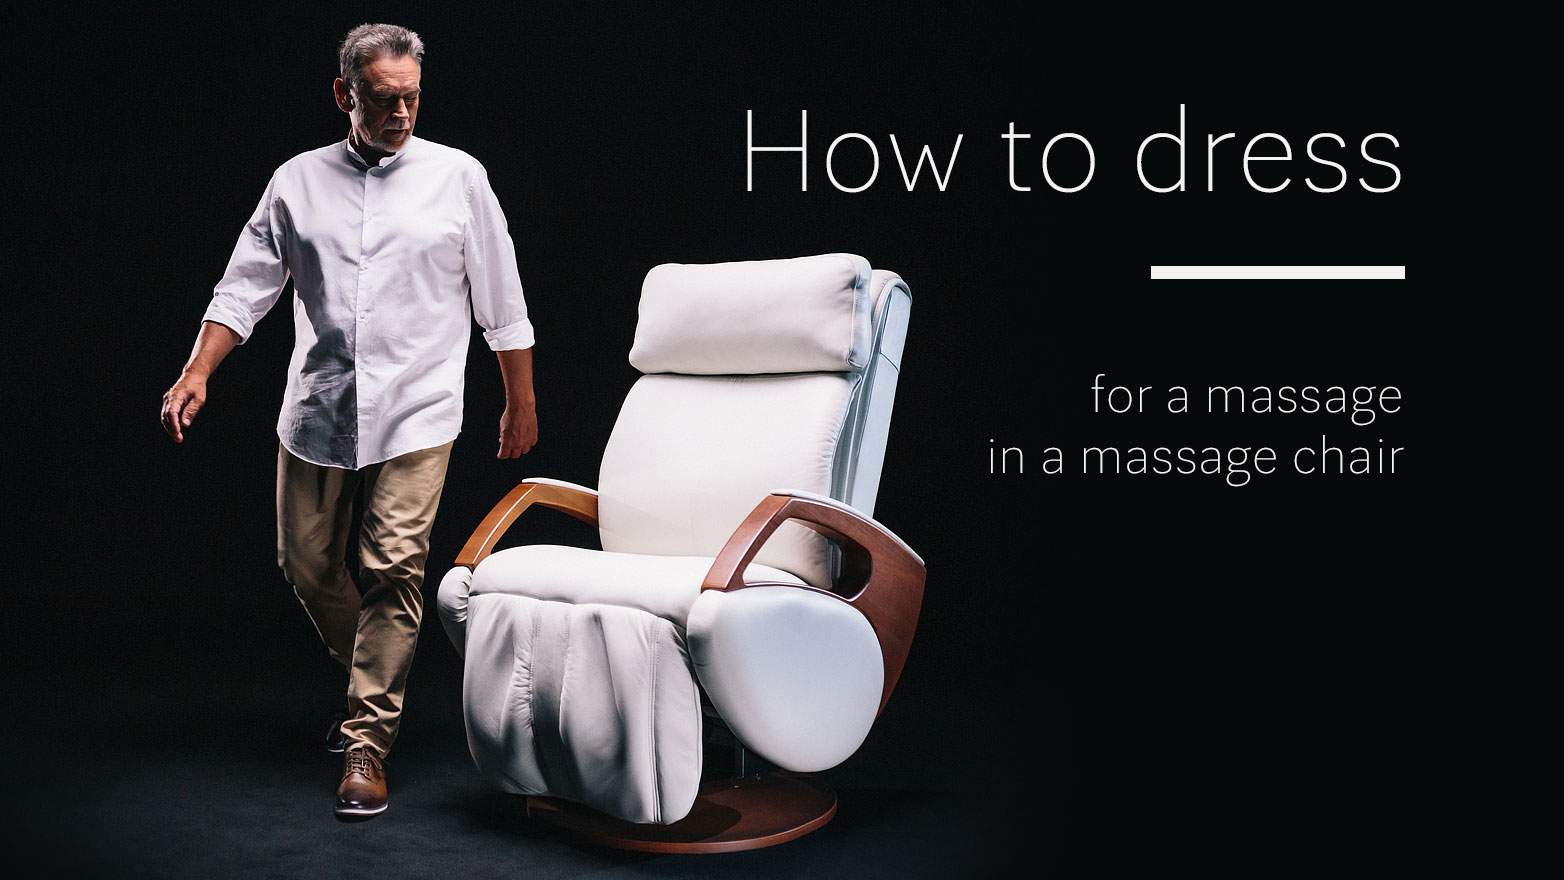 How to dress for massage in a massage chair?